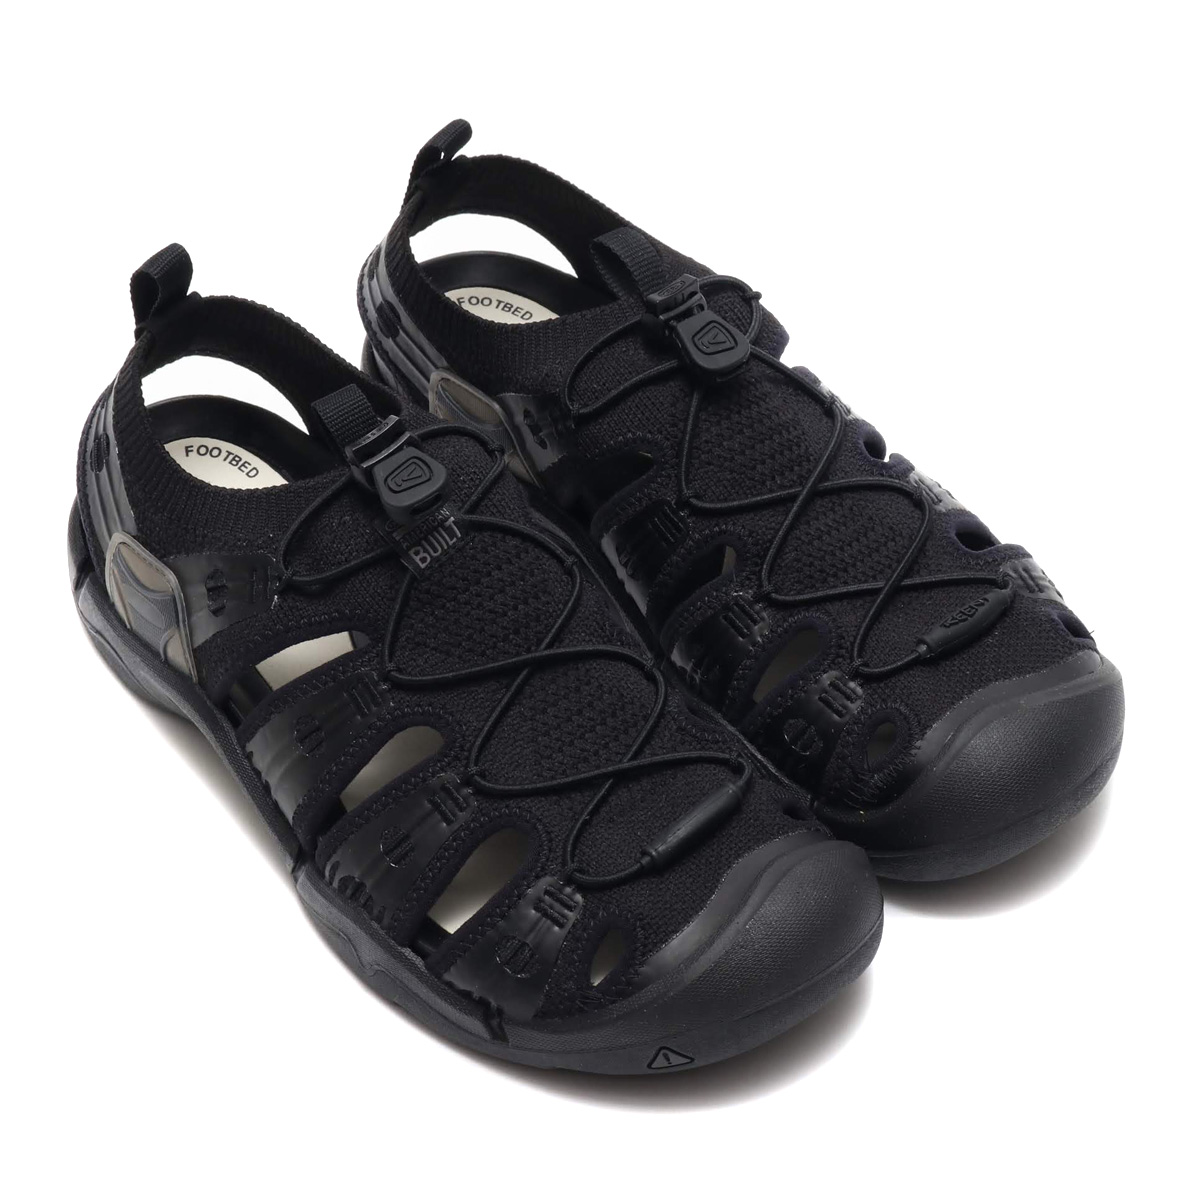 9a73c89e48d9 EVOFIT ONE (エヴォフィットワン) is the sandals of pro-evolution -22 centuries of  NEWPORT